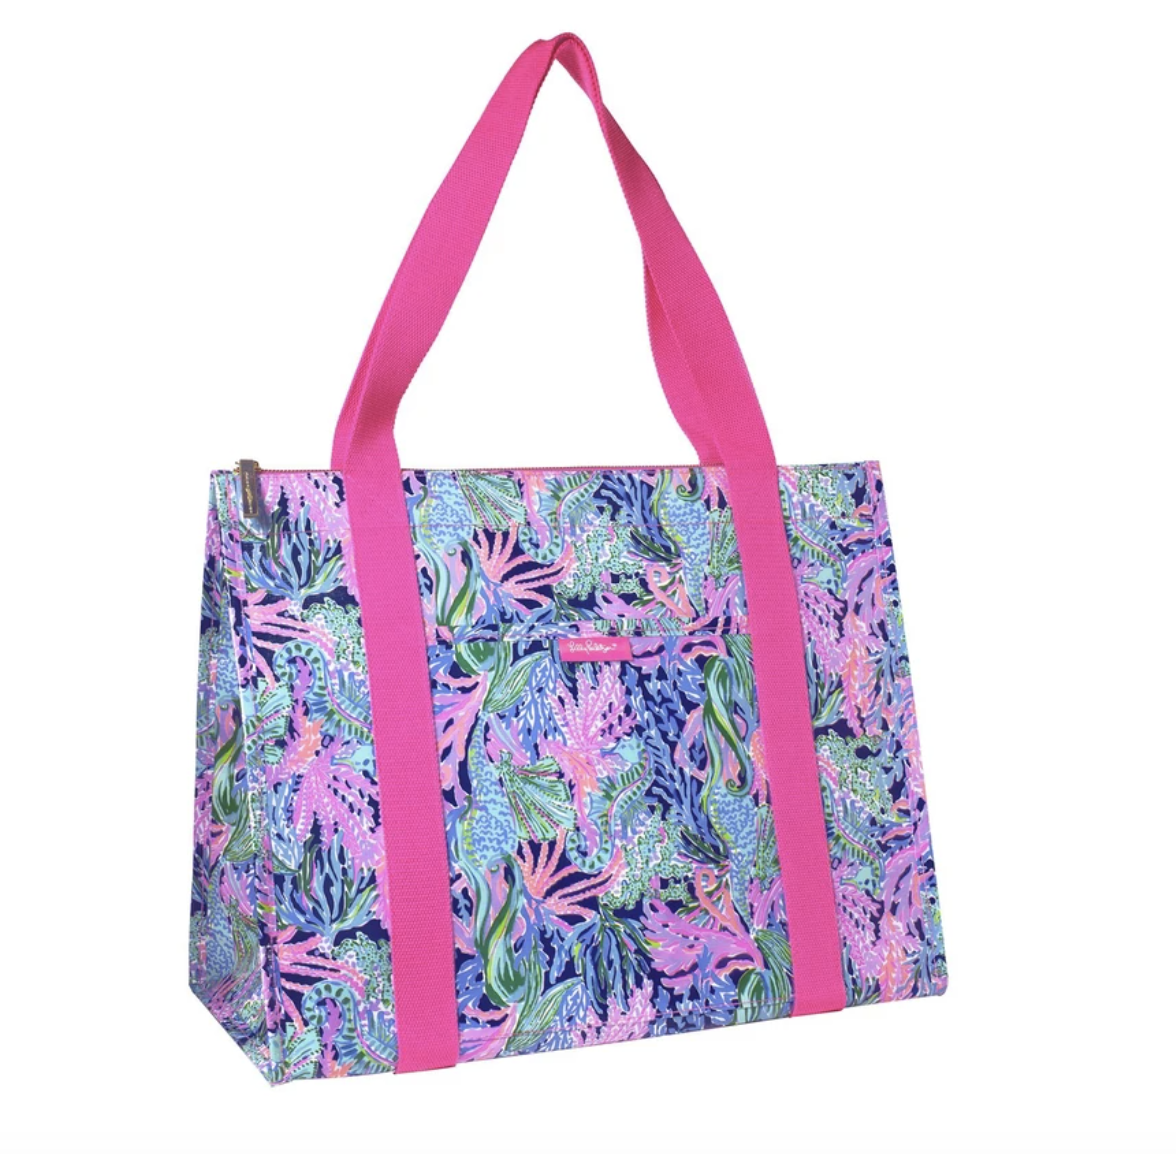 Insulate Market Shopper by Lilly Pulitzer